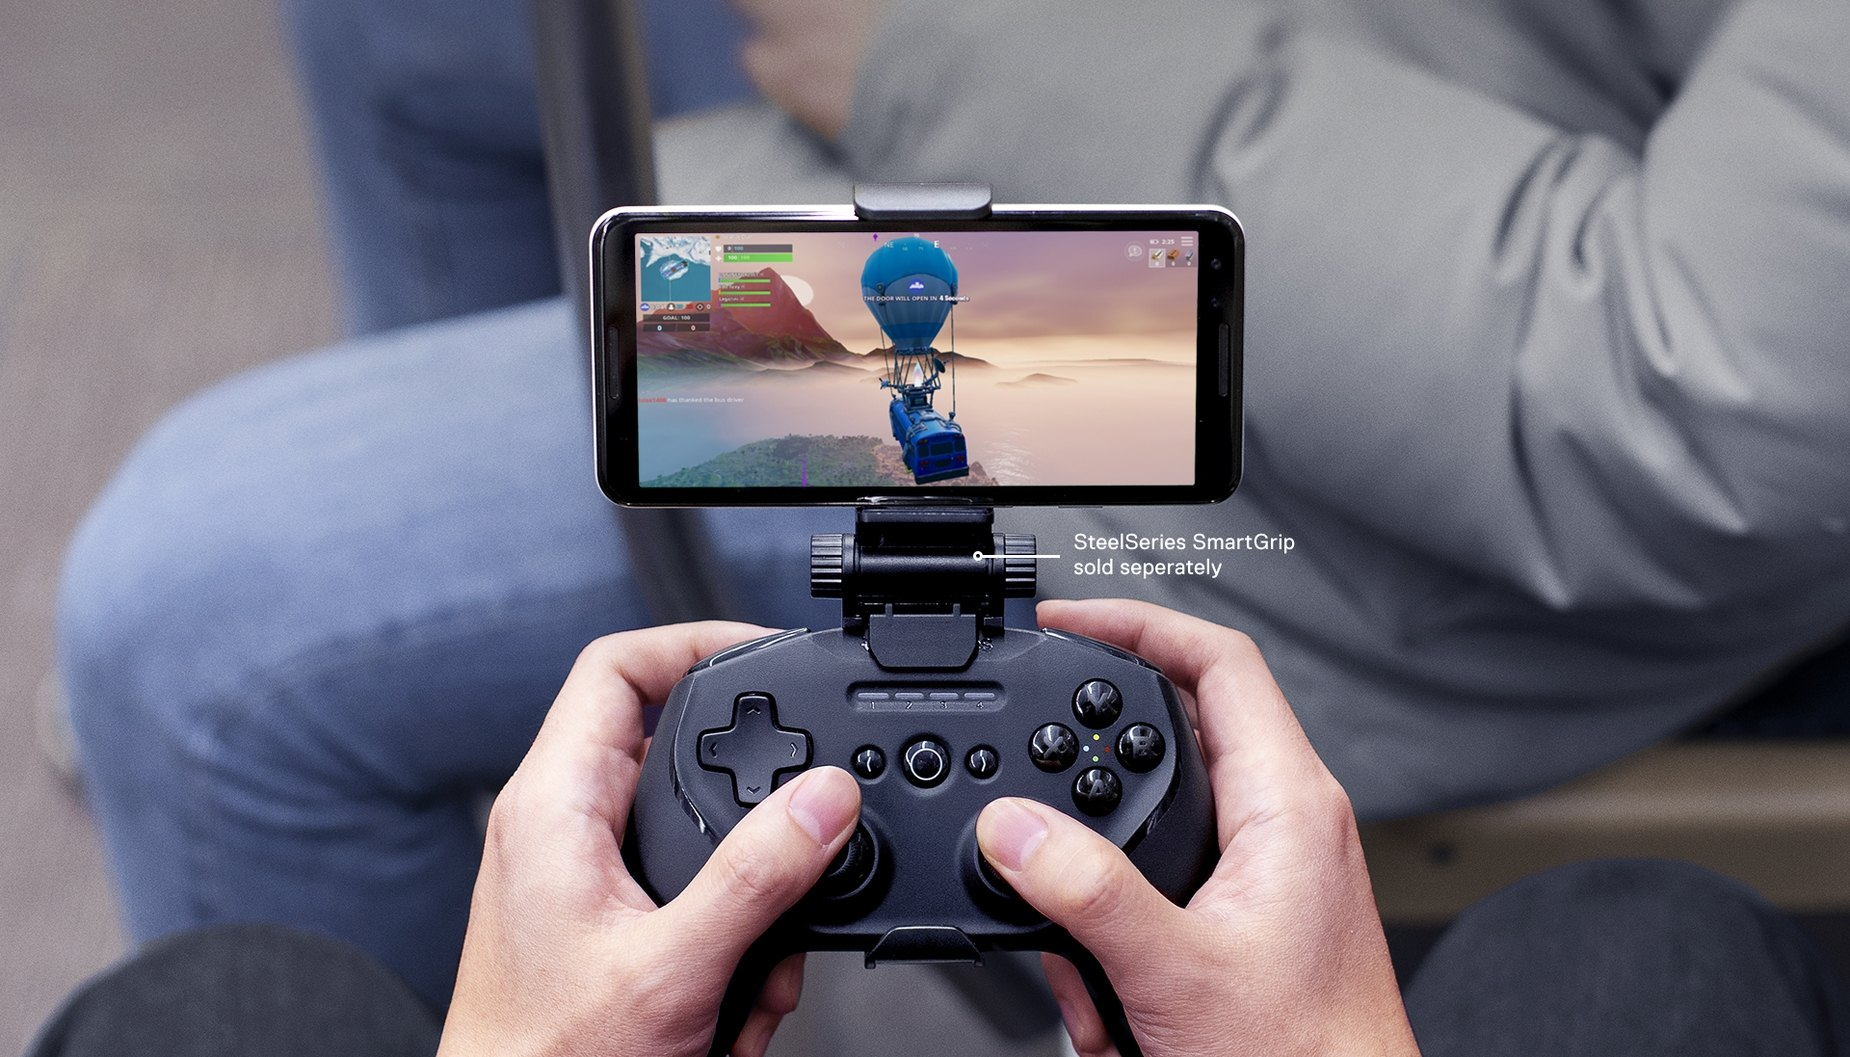 Hands holding Stratus Duo for Windows, Android™, and VR with SmartGrip attachment playing Fortnite mobile